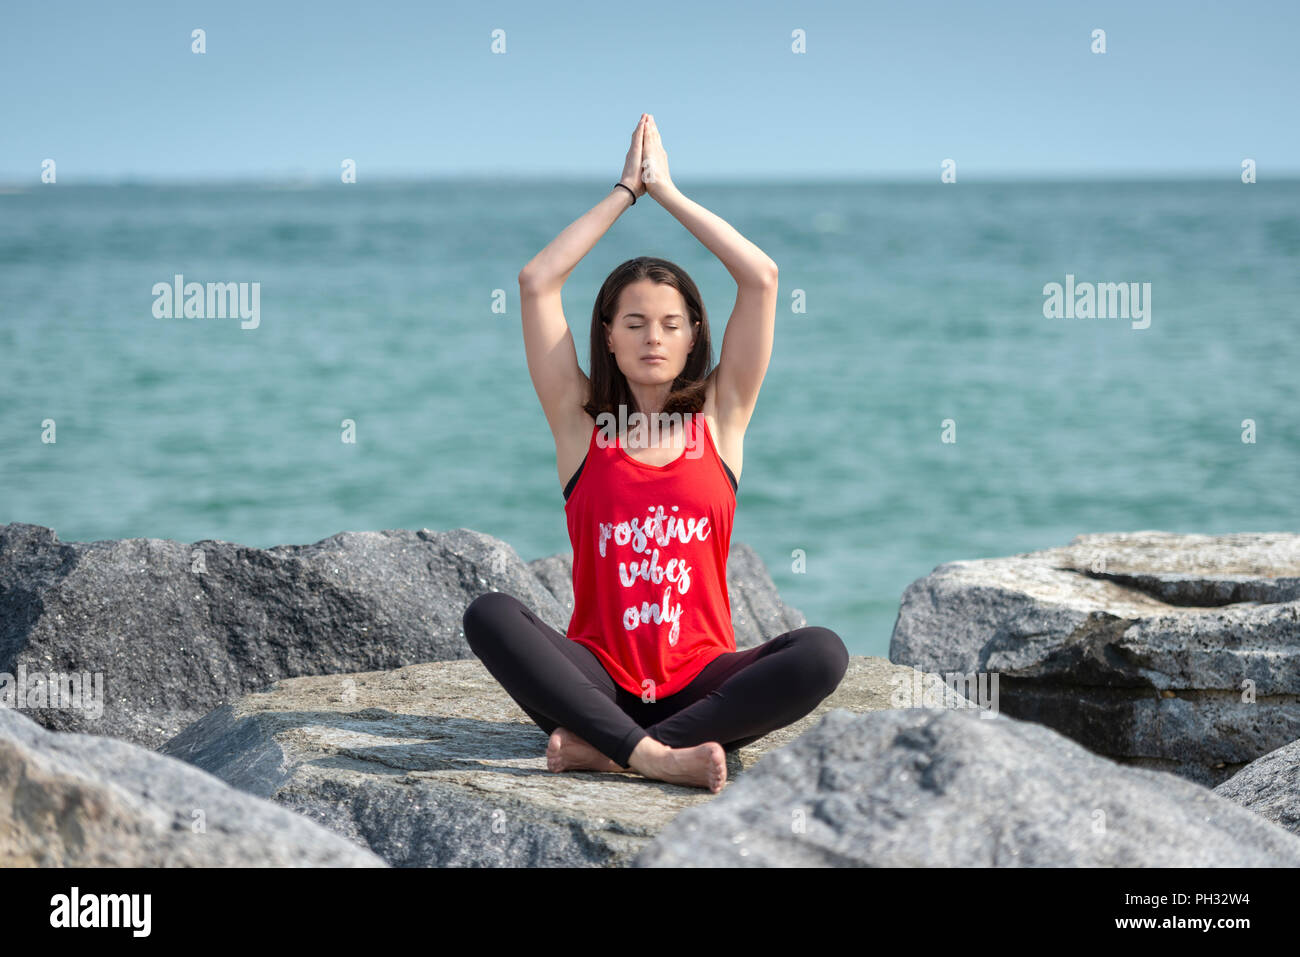 woman sitting crossed legged on rocks practicing yoga, easy pose, wearing a t shirt with 'Positive vibes only' slogan. - Stock Image